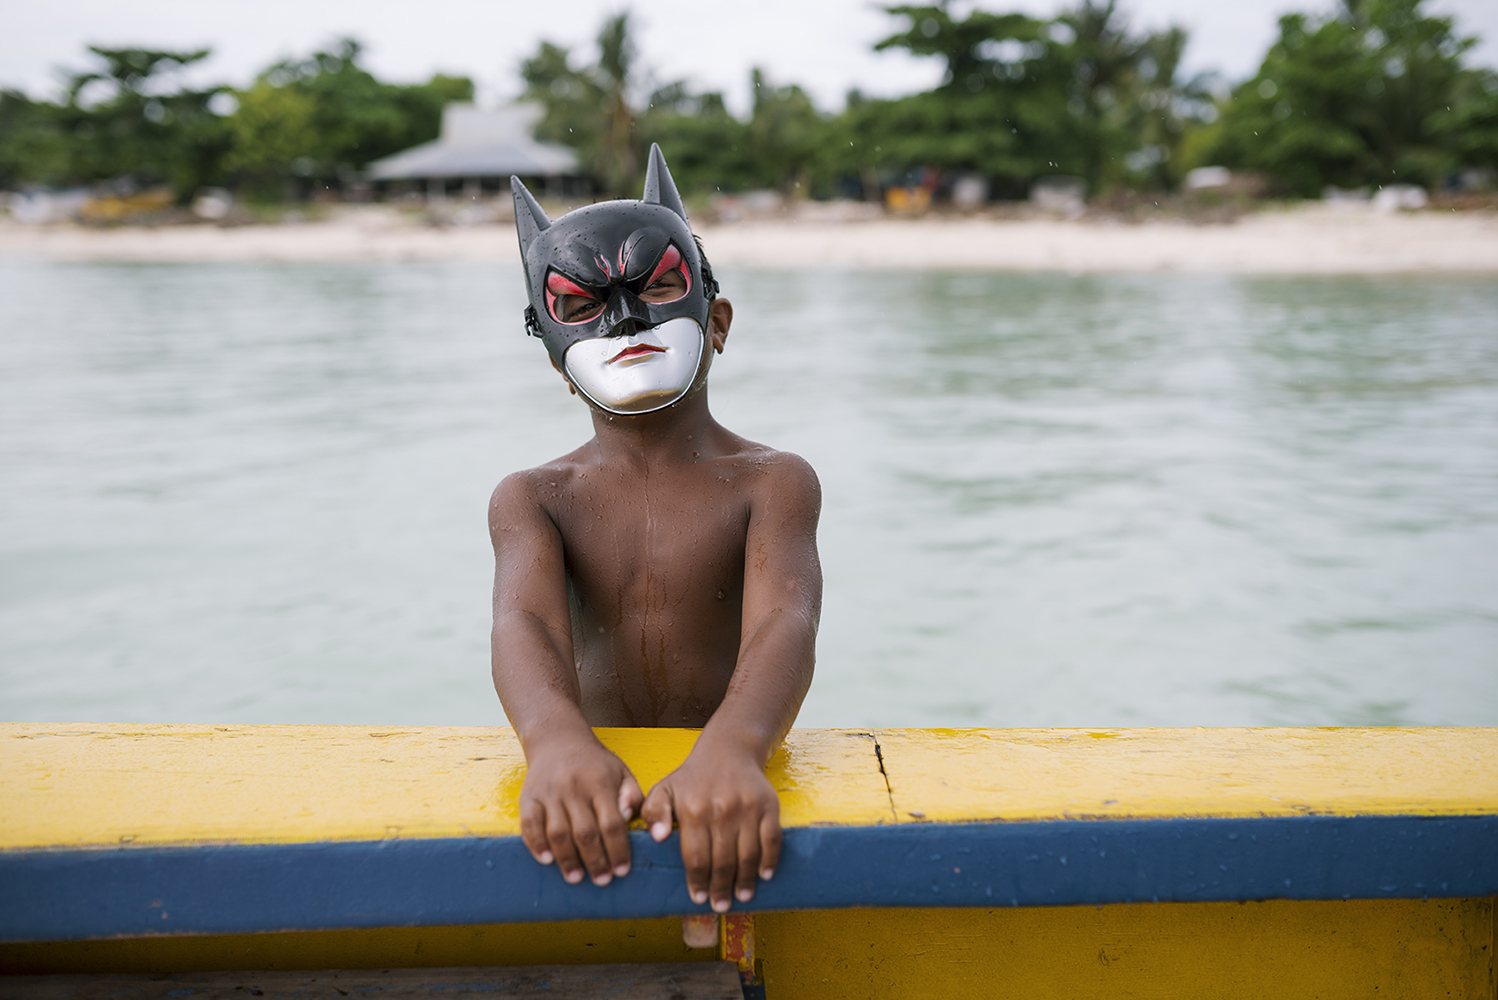 Betio, Tarawa Island, Kiribati, Pacific OceanYoung boy with a batman mask jumping on a artisinal fishing boat in the village Te O Ni Beeki in Betio, on Tarawa Island, Kiribati